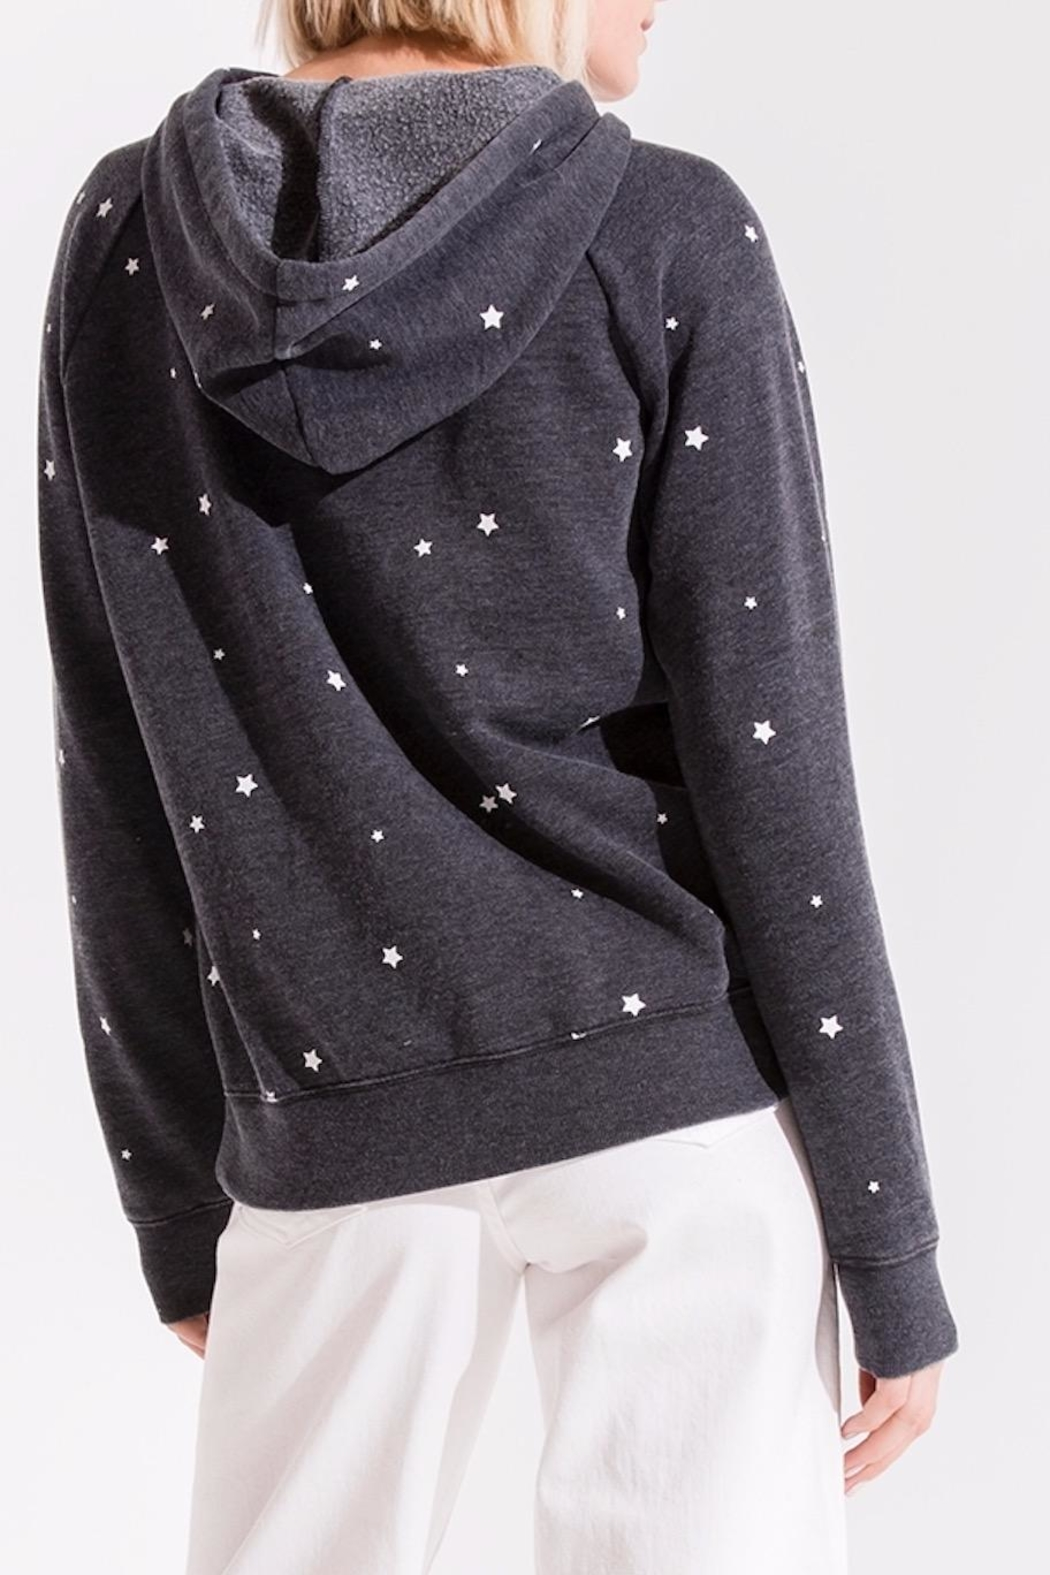 z supply Star Print Pullover - Front Full Image